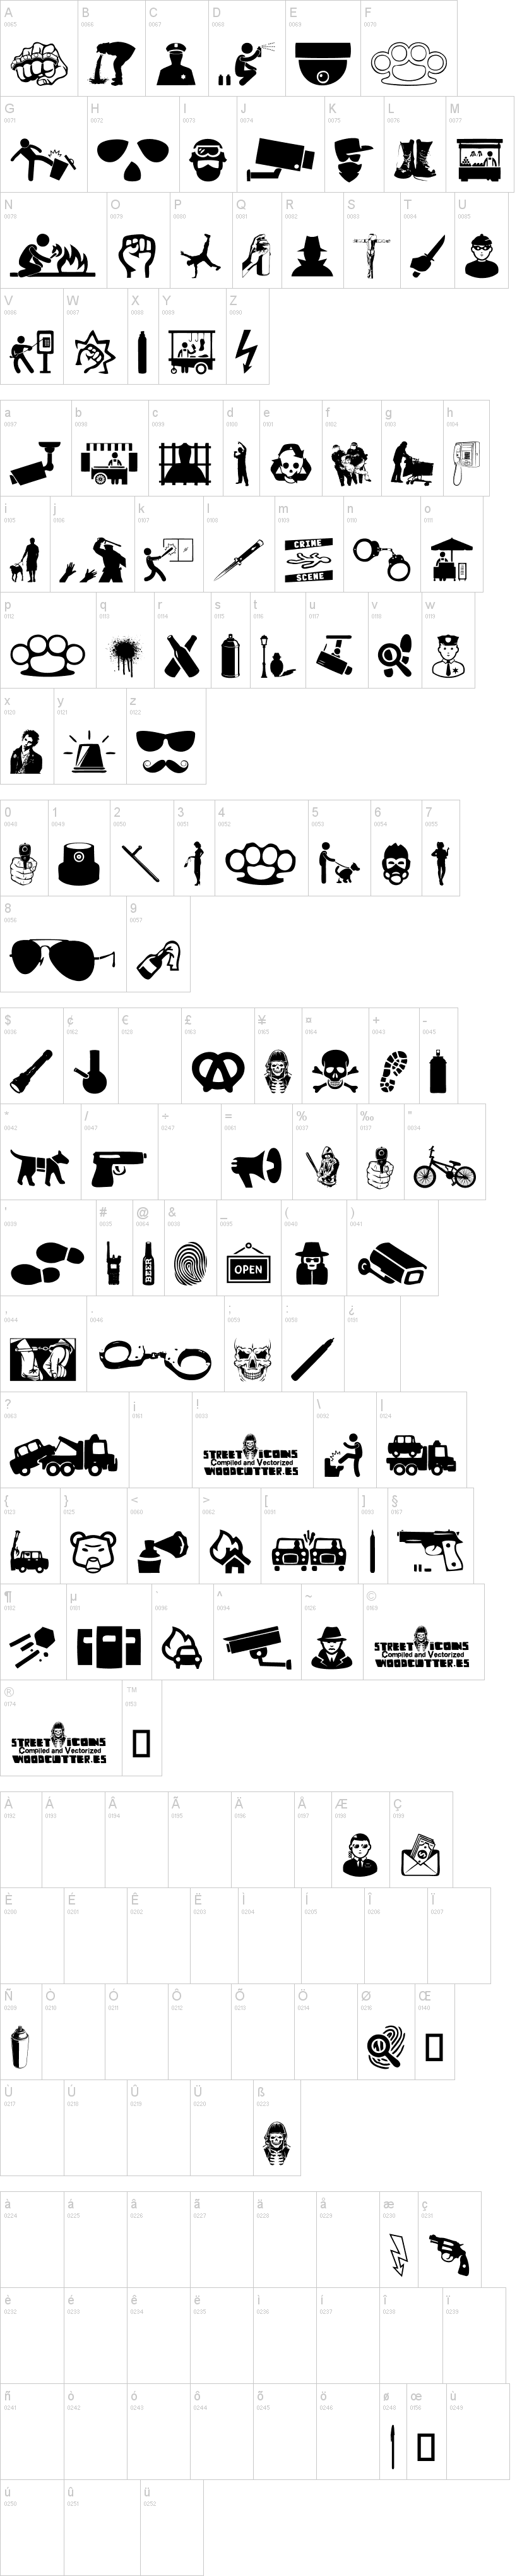 street icons font